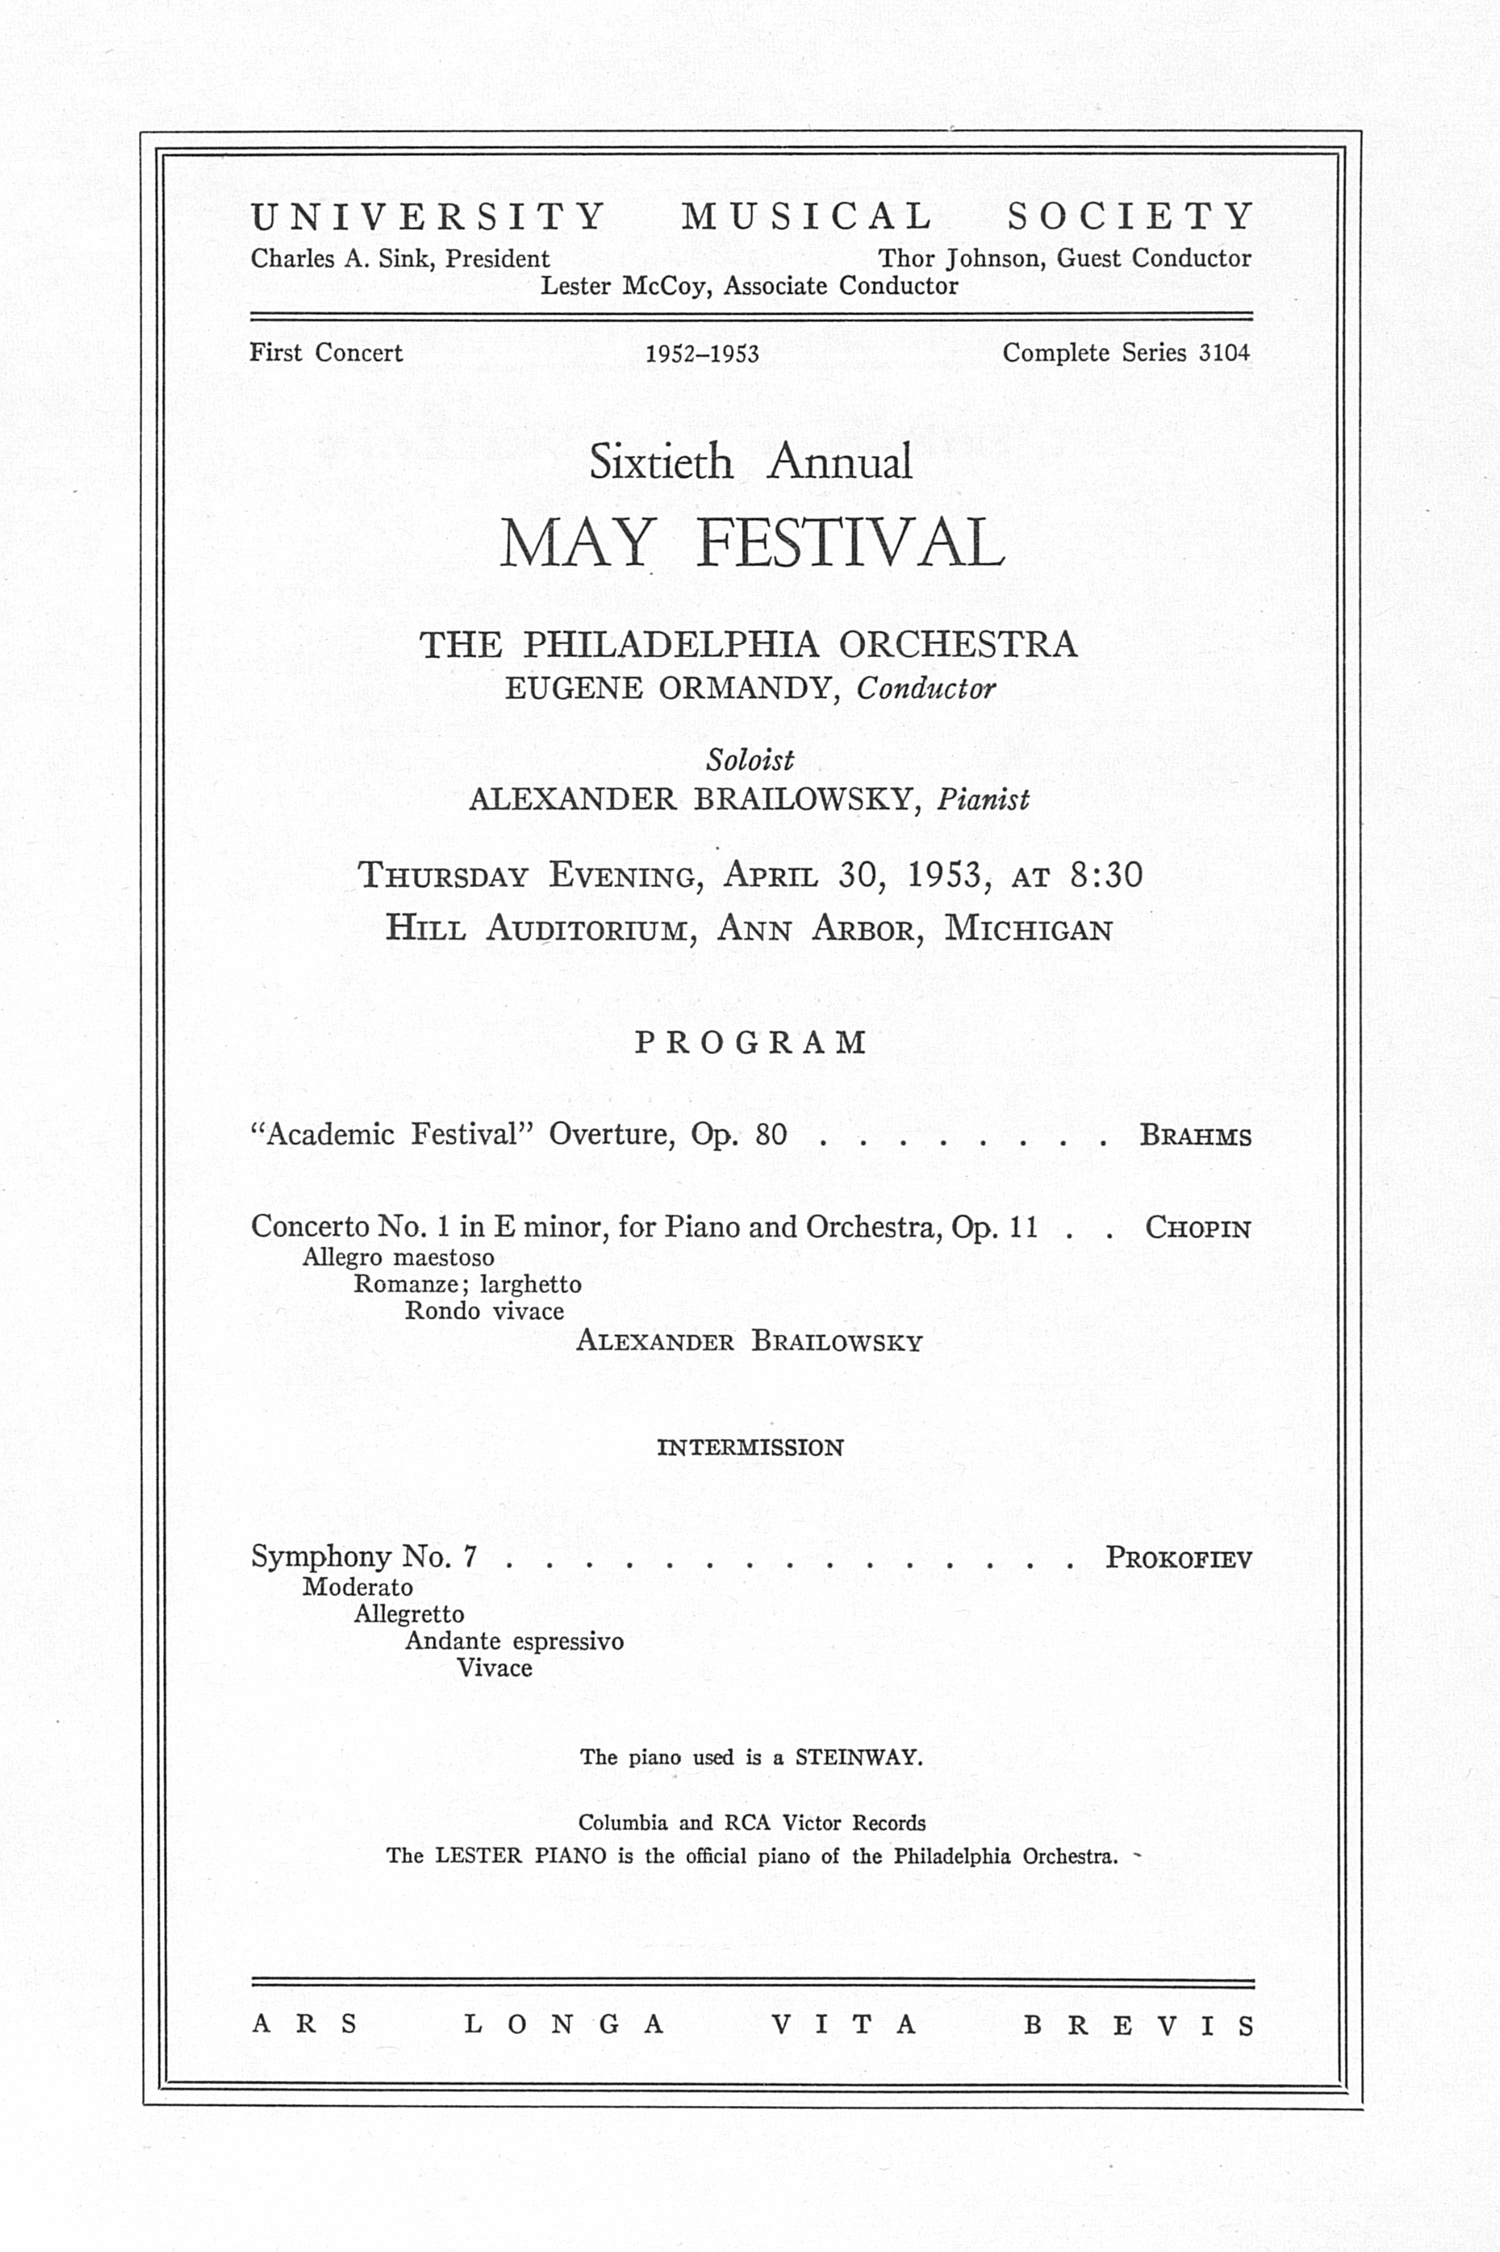 UMS Concert Program, April 30, 1953: Sixtieth Annual May Festival -- The Philadelphia Orchestra image